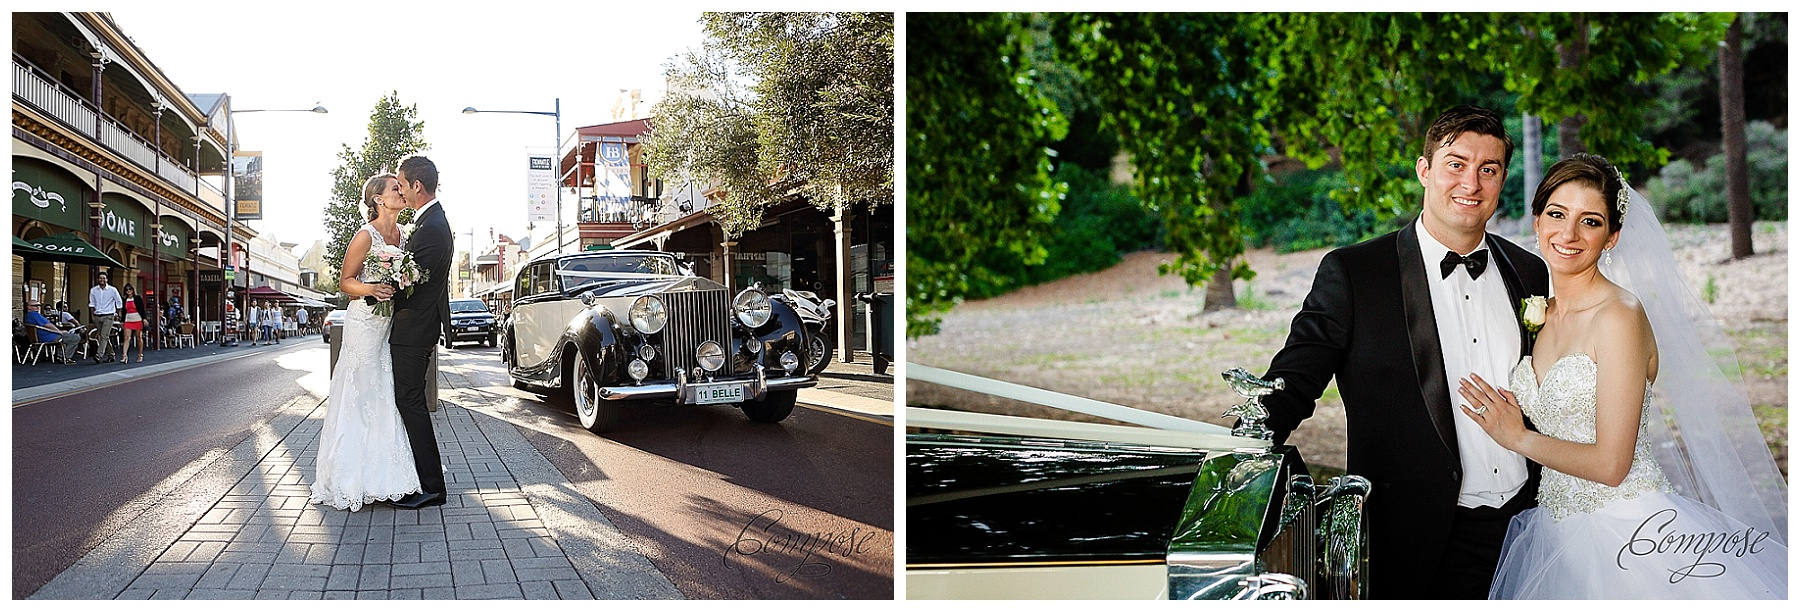 wedding photographer fremantle